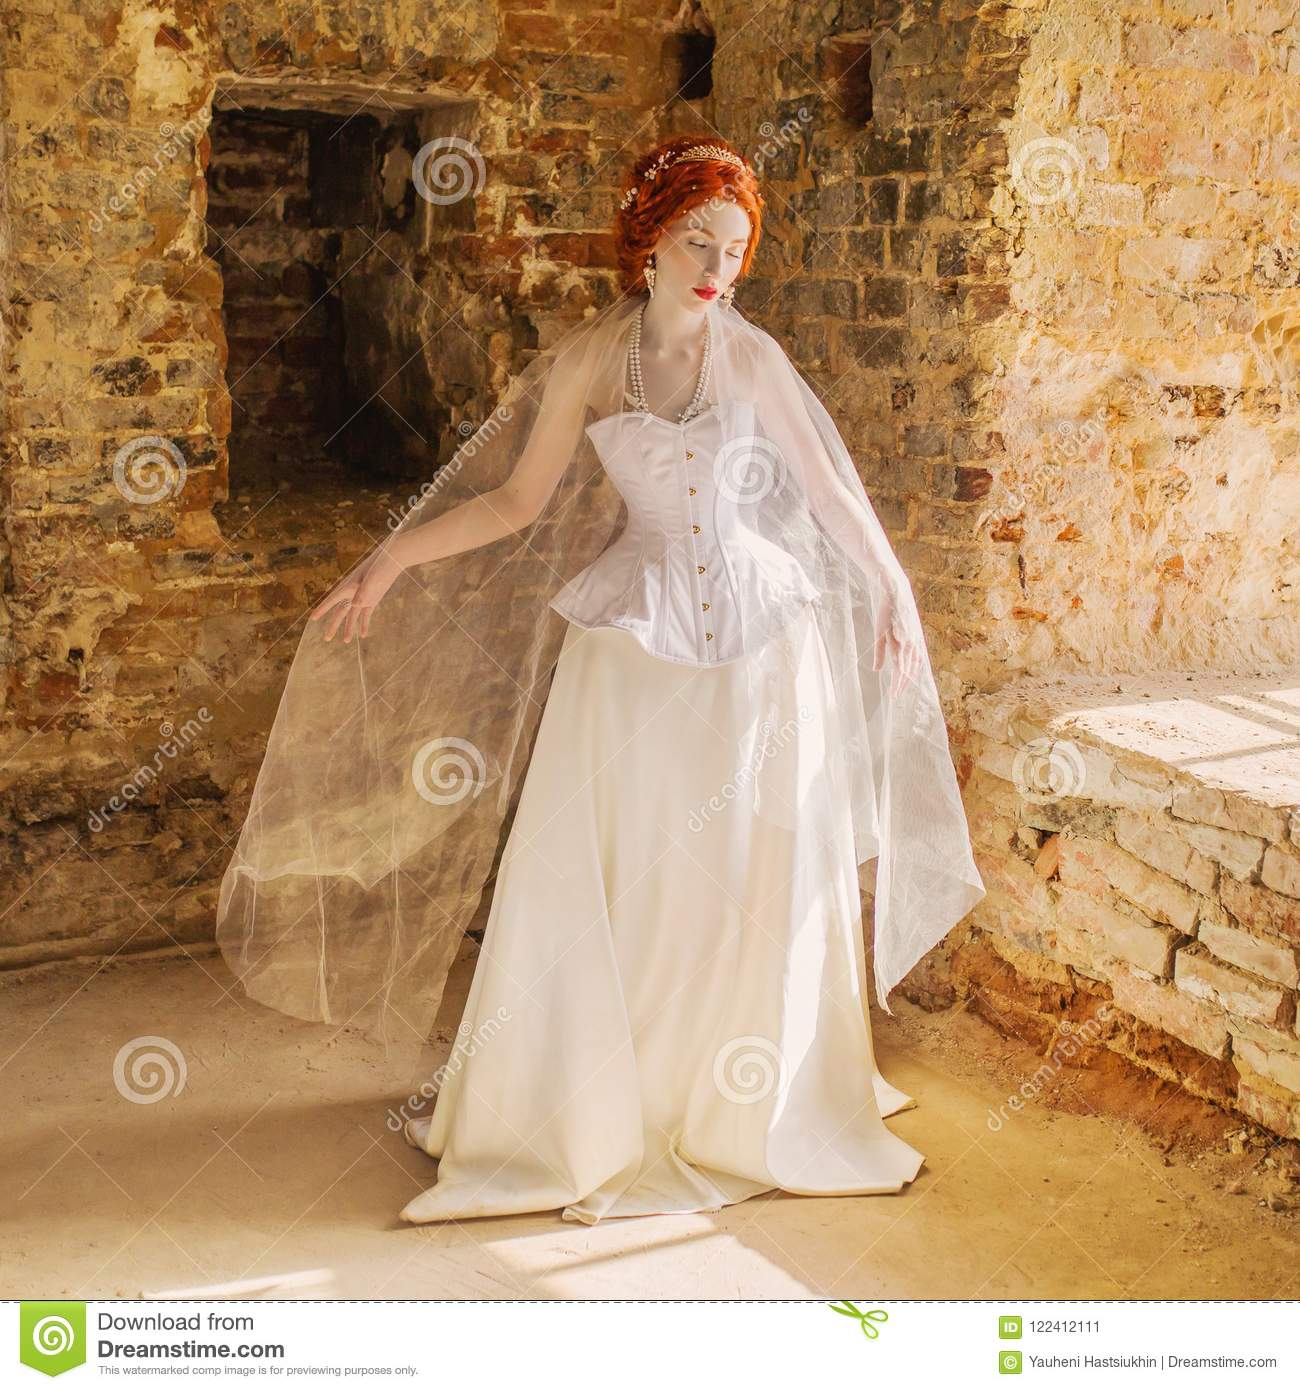 787a30145f0 Young renaissance redhead princess with hairstyle in old castle from  fairytale. Doll in corset. Renaissance princess in palace.